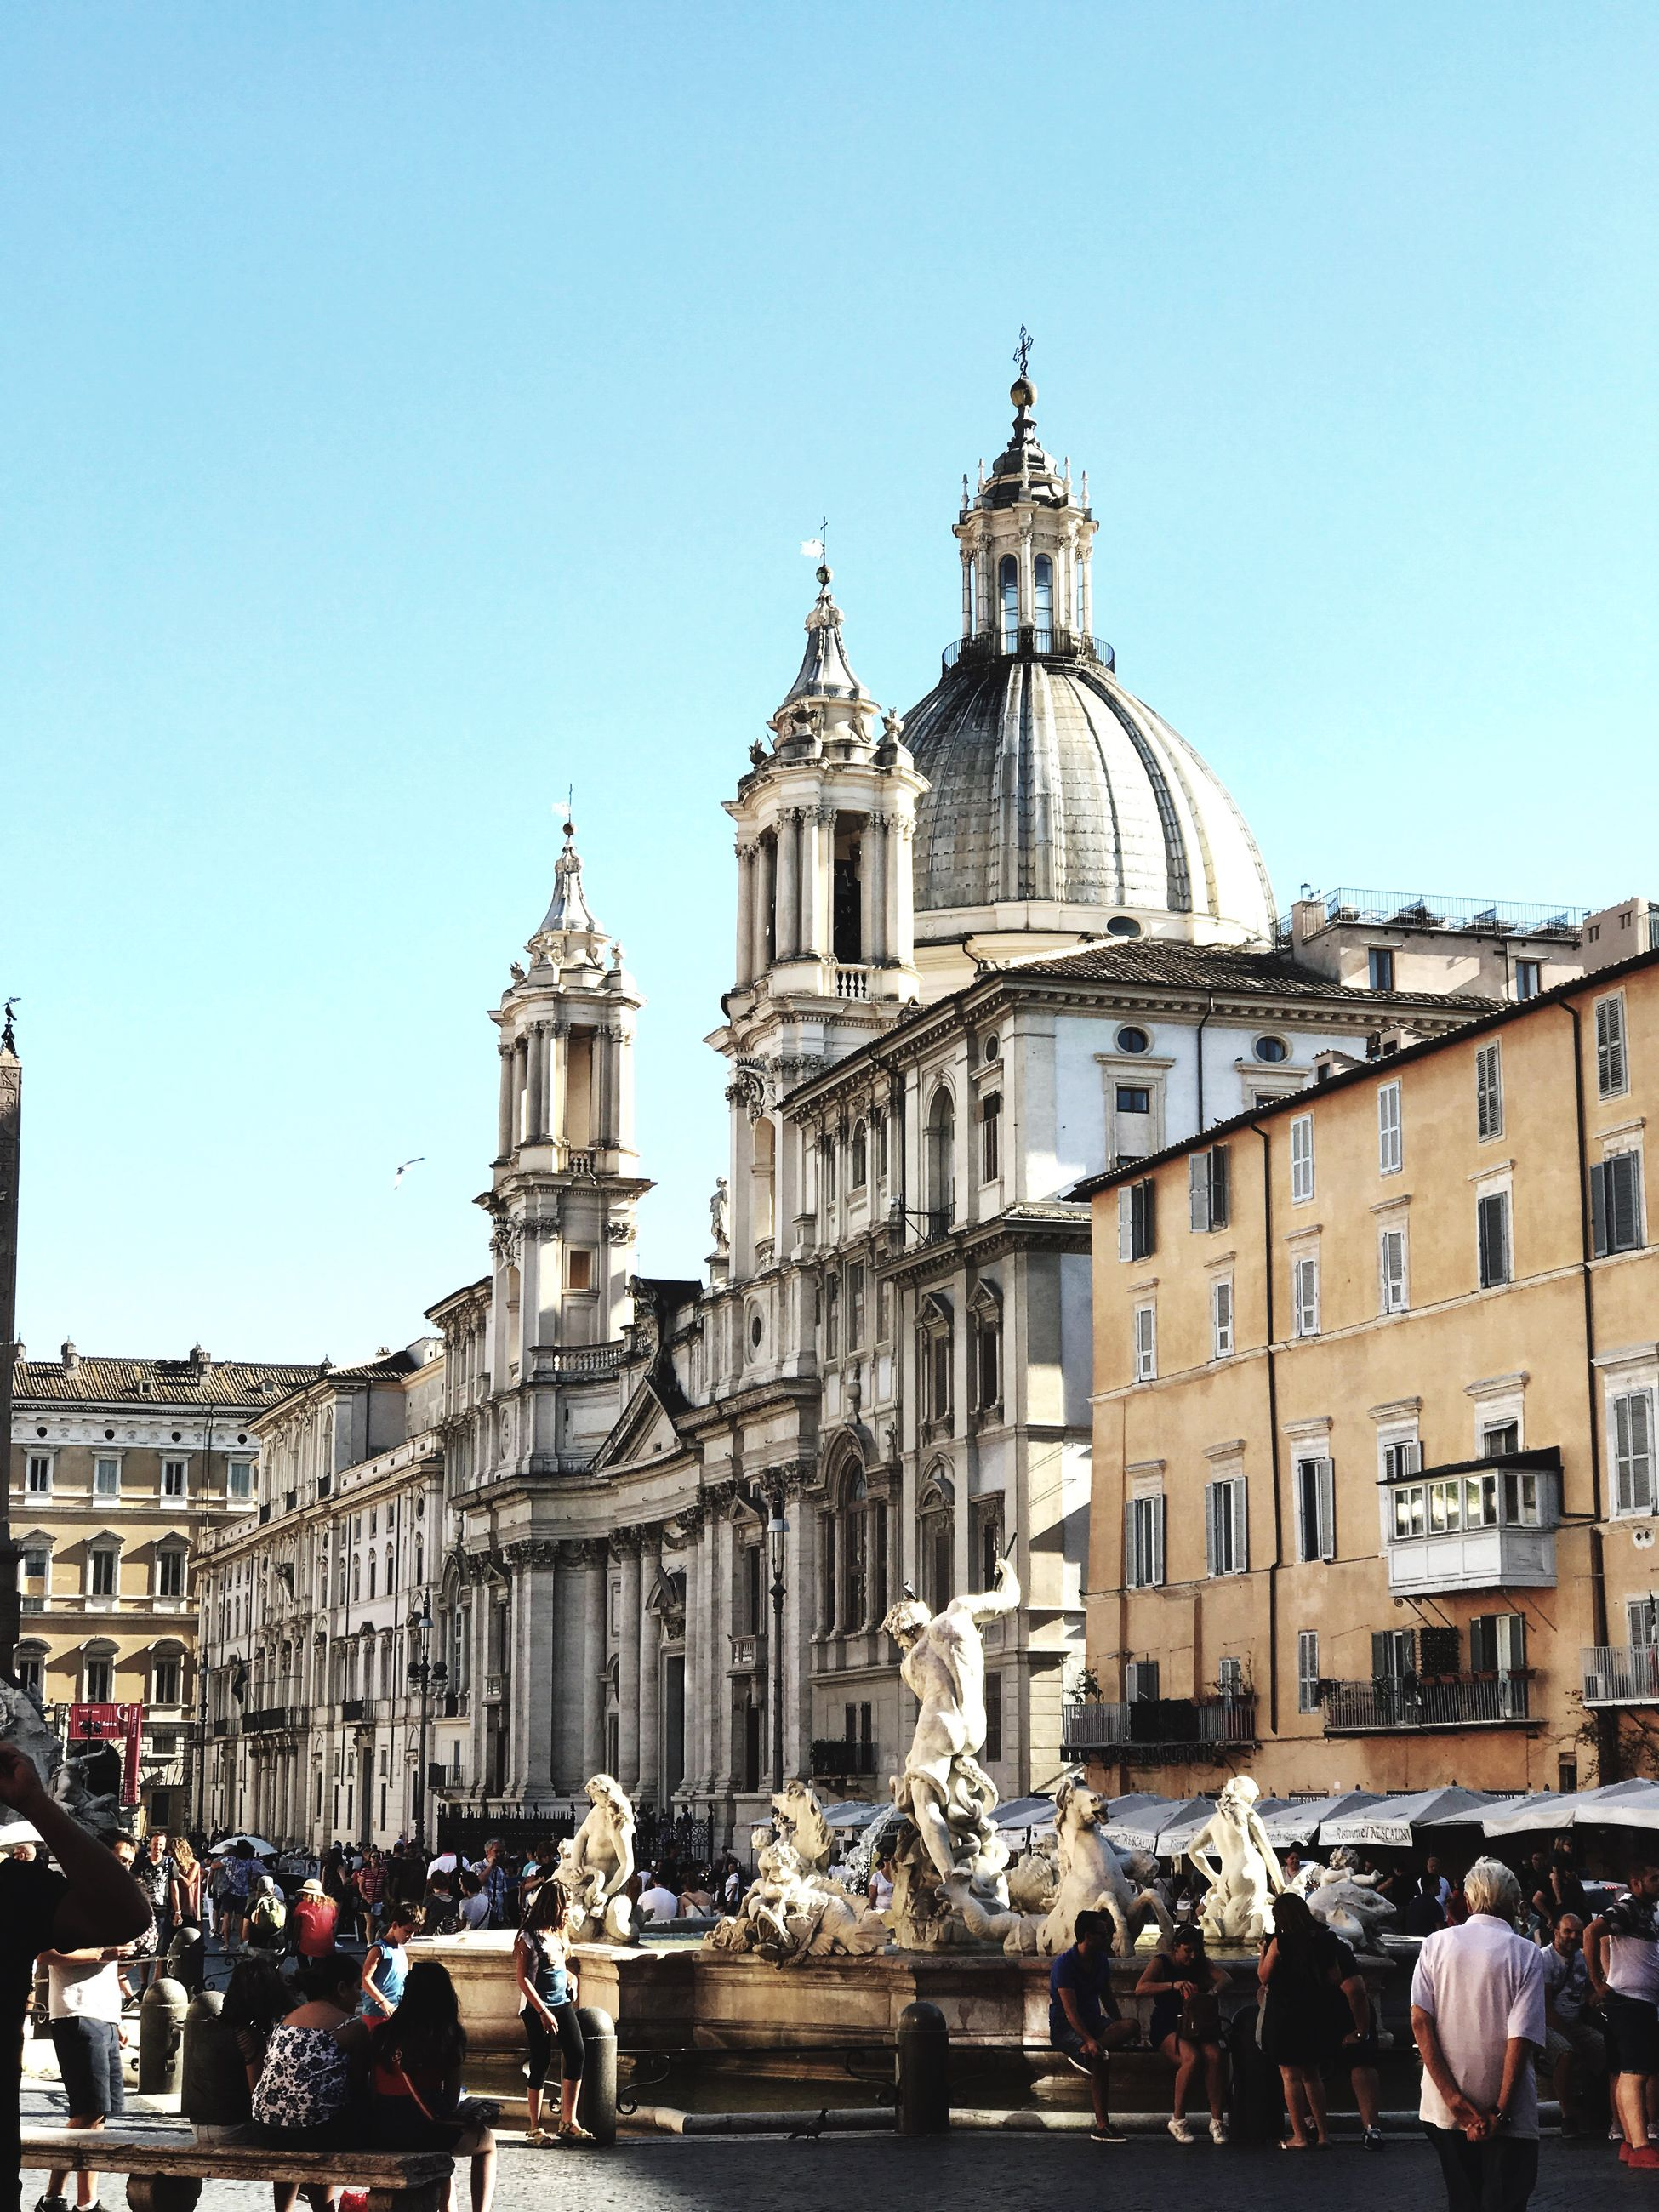 architecture, statue, building exterior, built structure, sculpture, human representation, large group of people, clear sky, art and craft, place of worship, religion, spirituality, history, real people, travel destinations, dome, men, day, outdoors, city, baroque style, sky, people